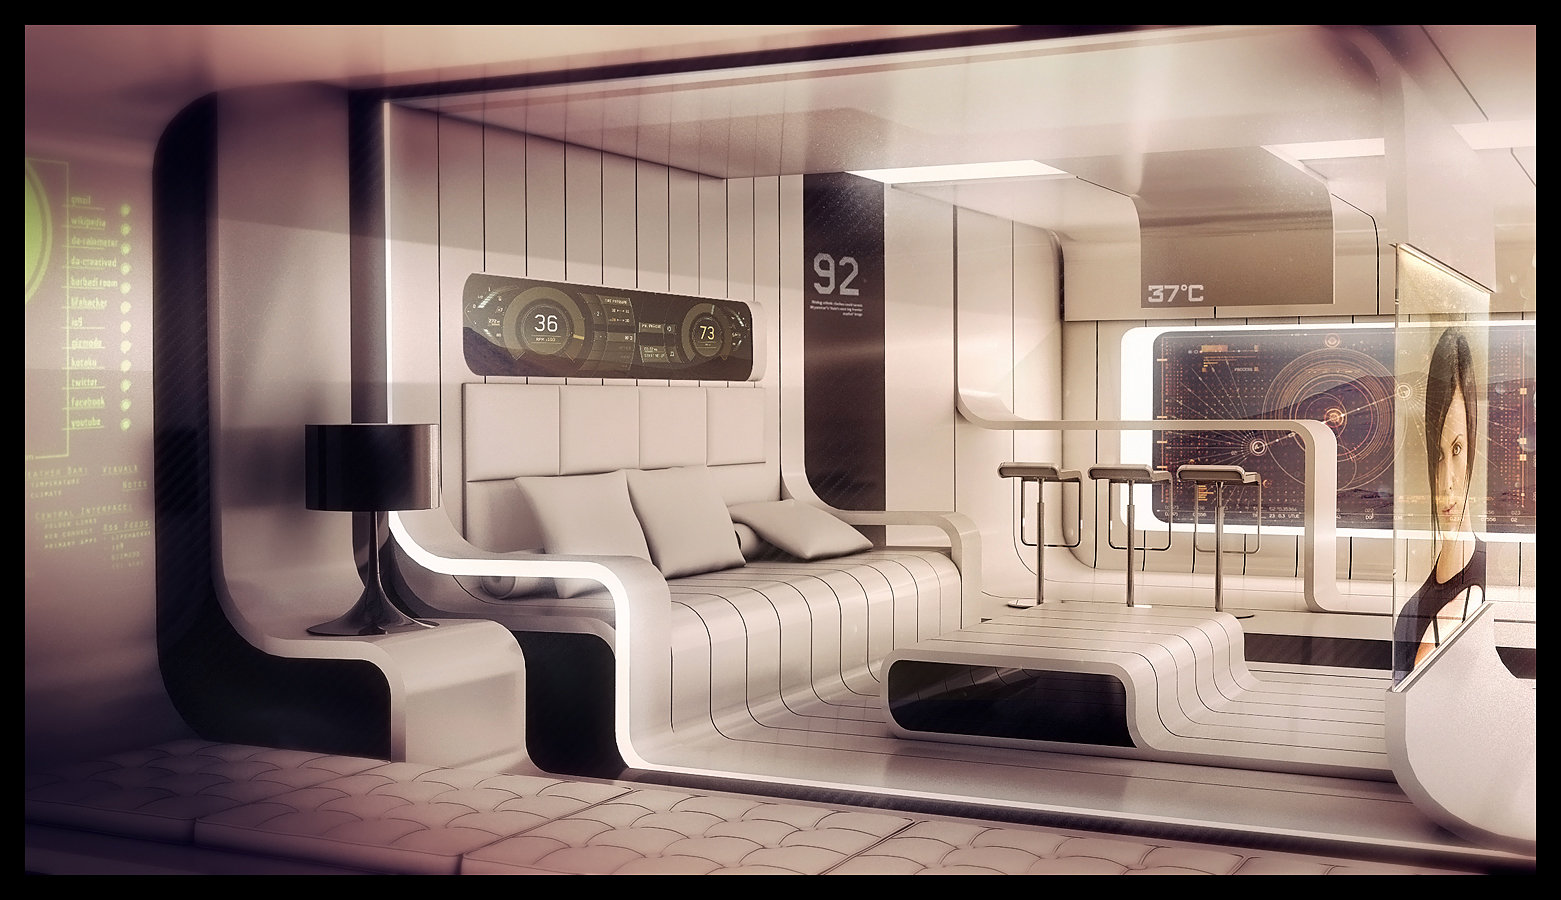 & ArtStation - My interior design and architecture Encho Enchev